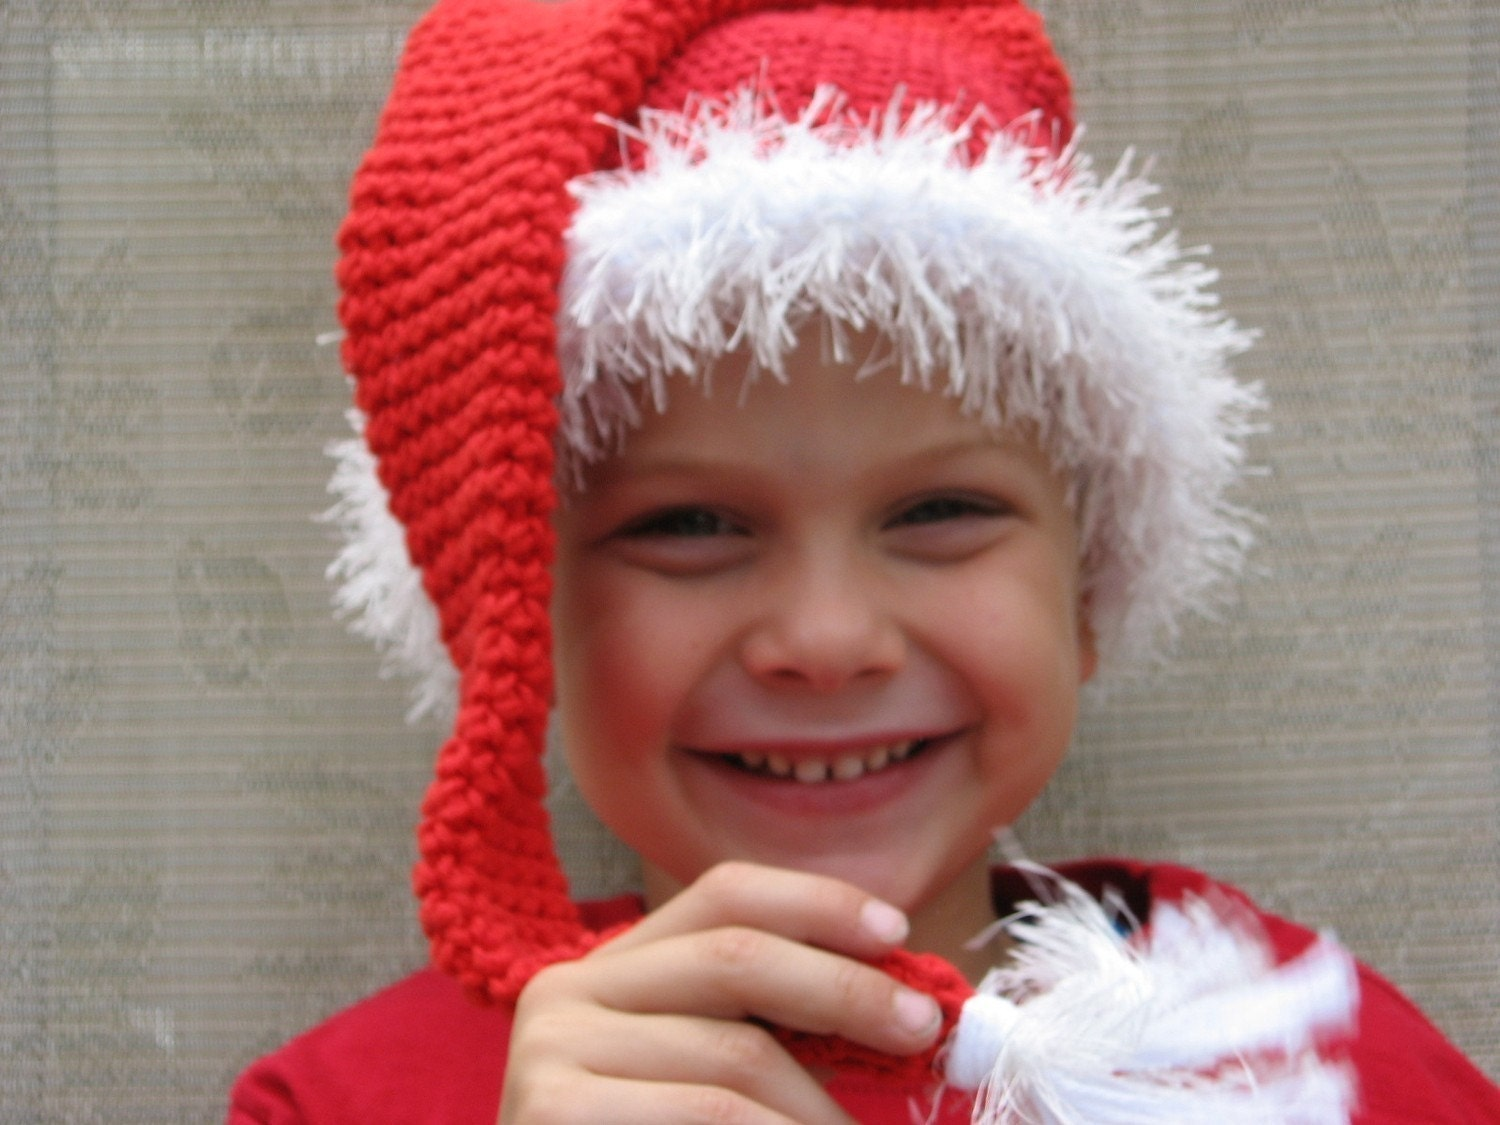 Crochet Tassel Hat Pattern For Baby : Santa Baby Long Tassel Hat Crochet Pattern Pdf Newborn to